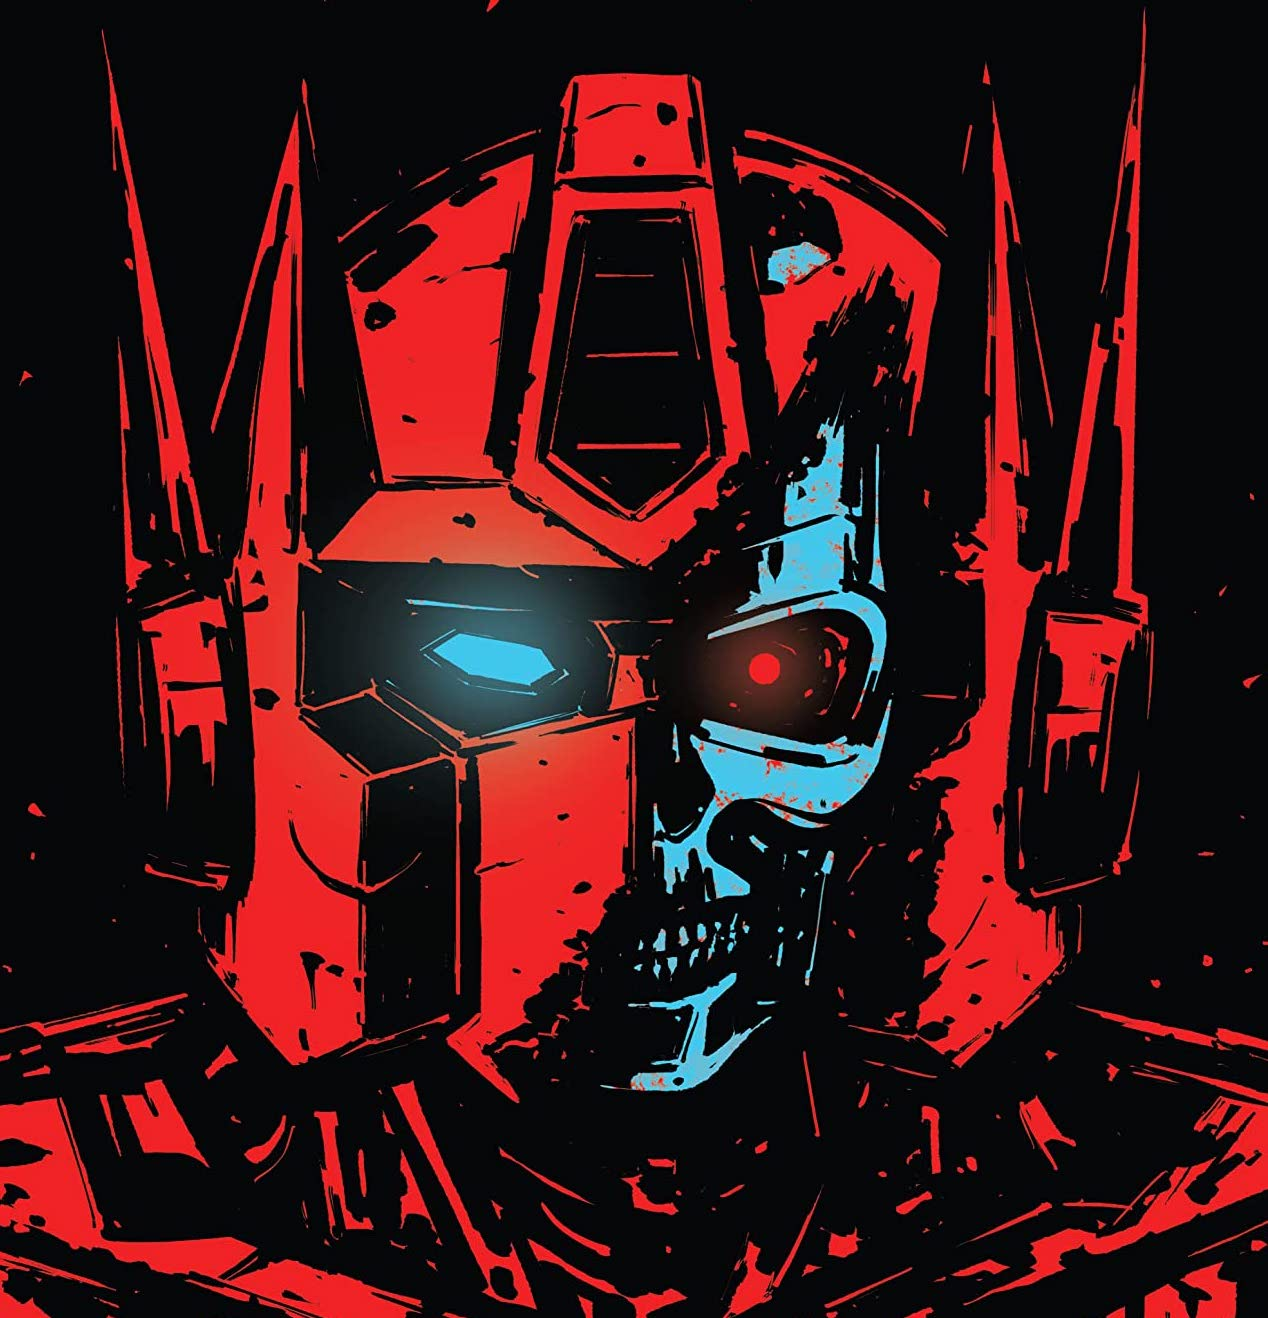 It's Skynet vs. Cybertron in a crossover for the ages!